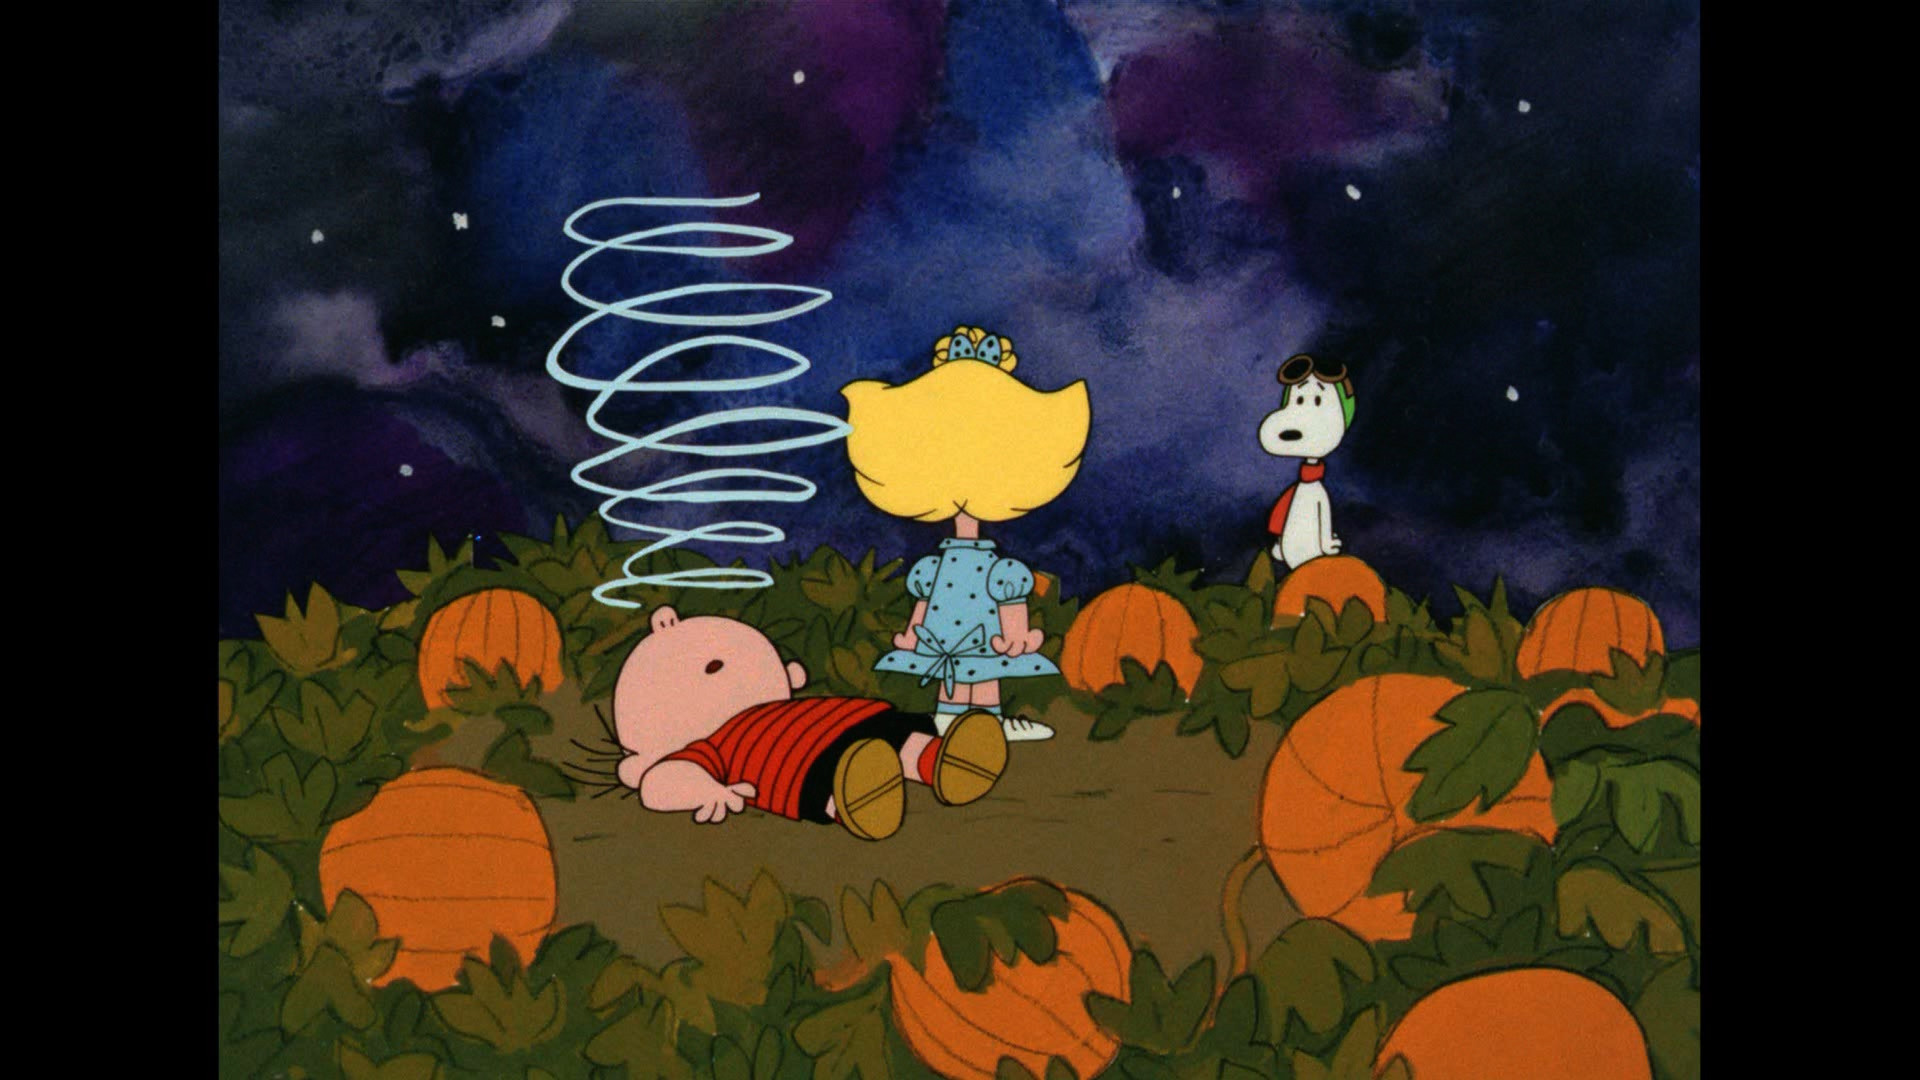 Snoopy Halloween Wallpaper 52 Images